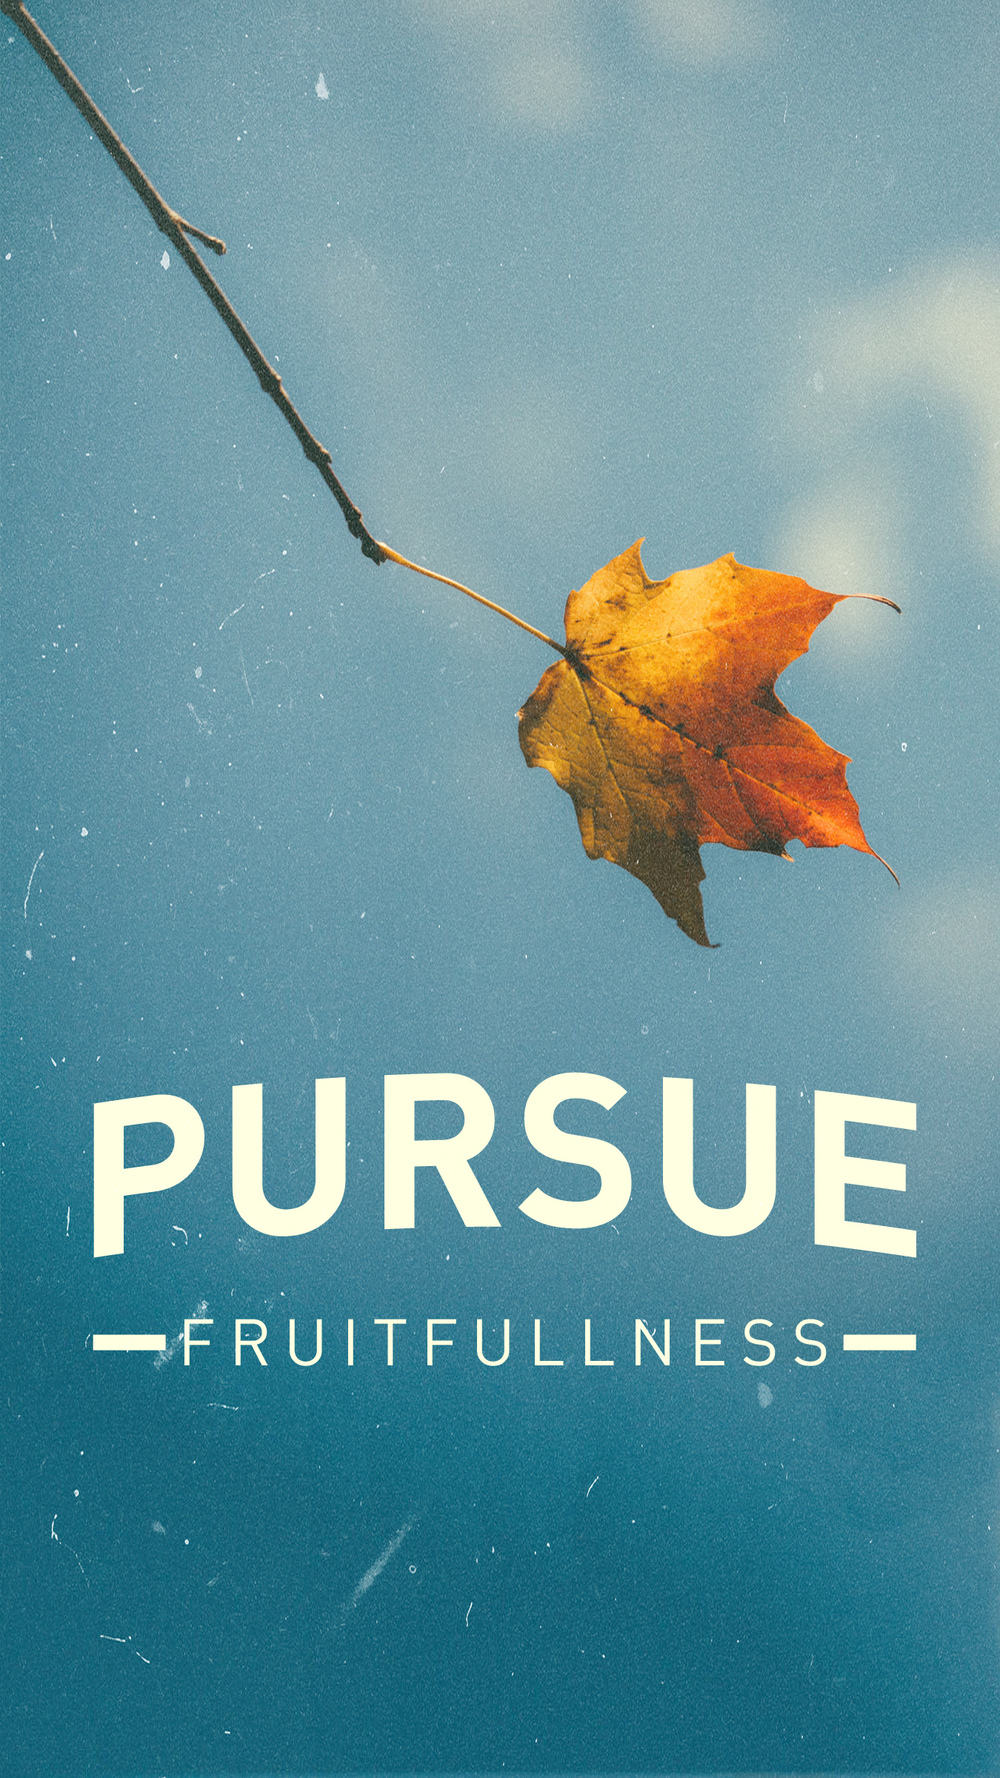 Download this graphic as a lock screen for your mobile device as a reminder to be fruitful.